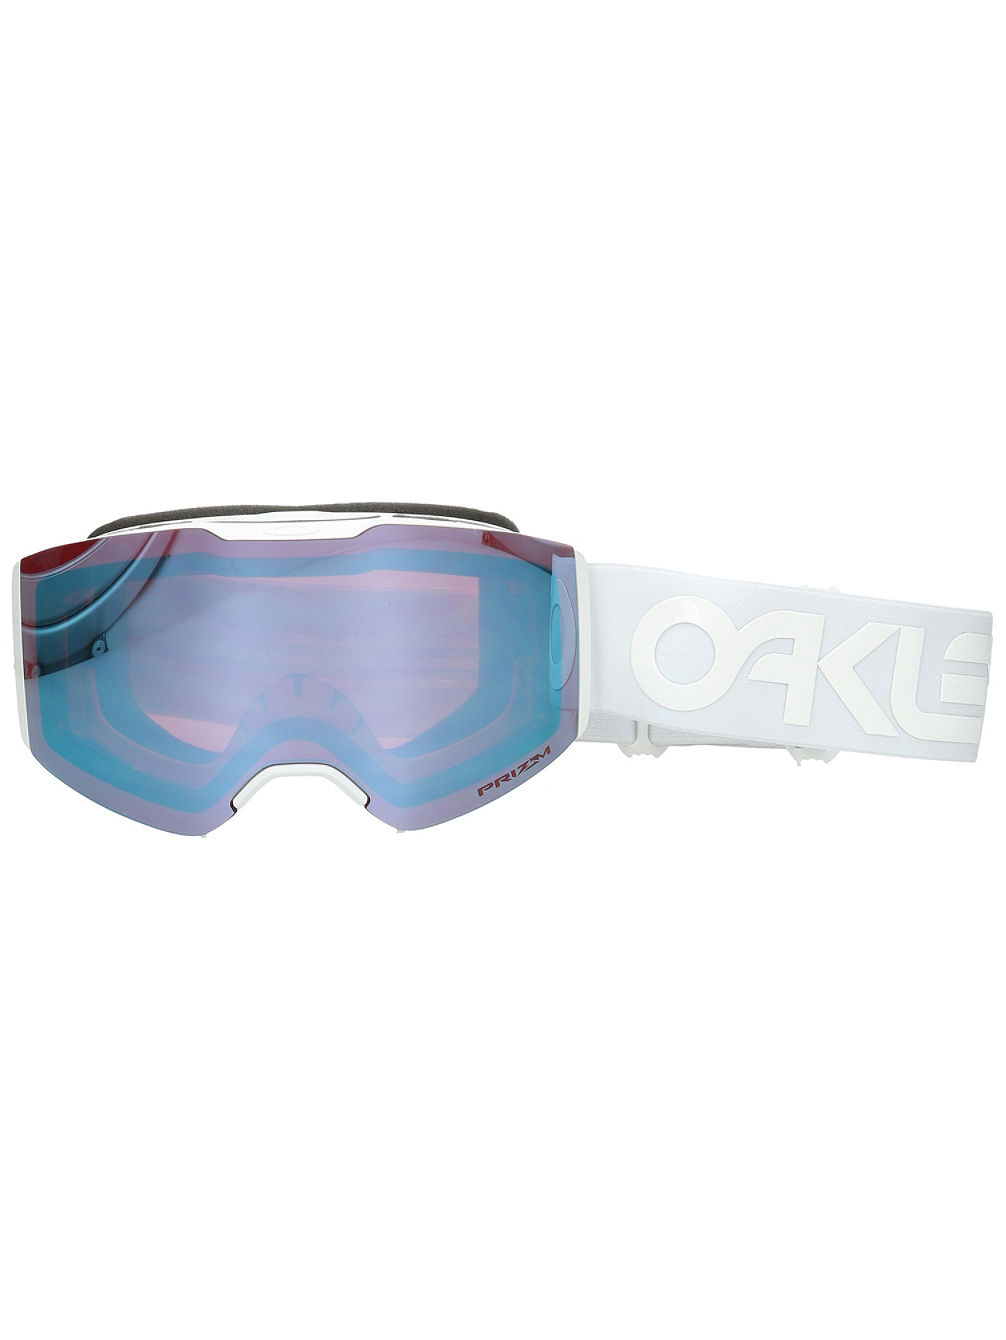 Fall Line Factory Pilot Whiteout Goggle